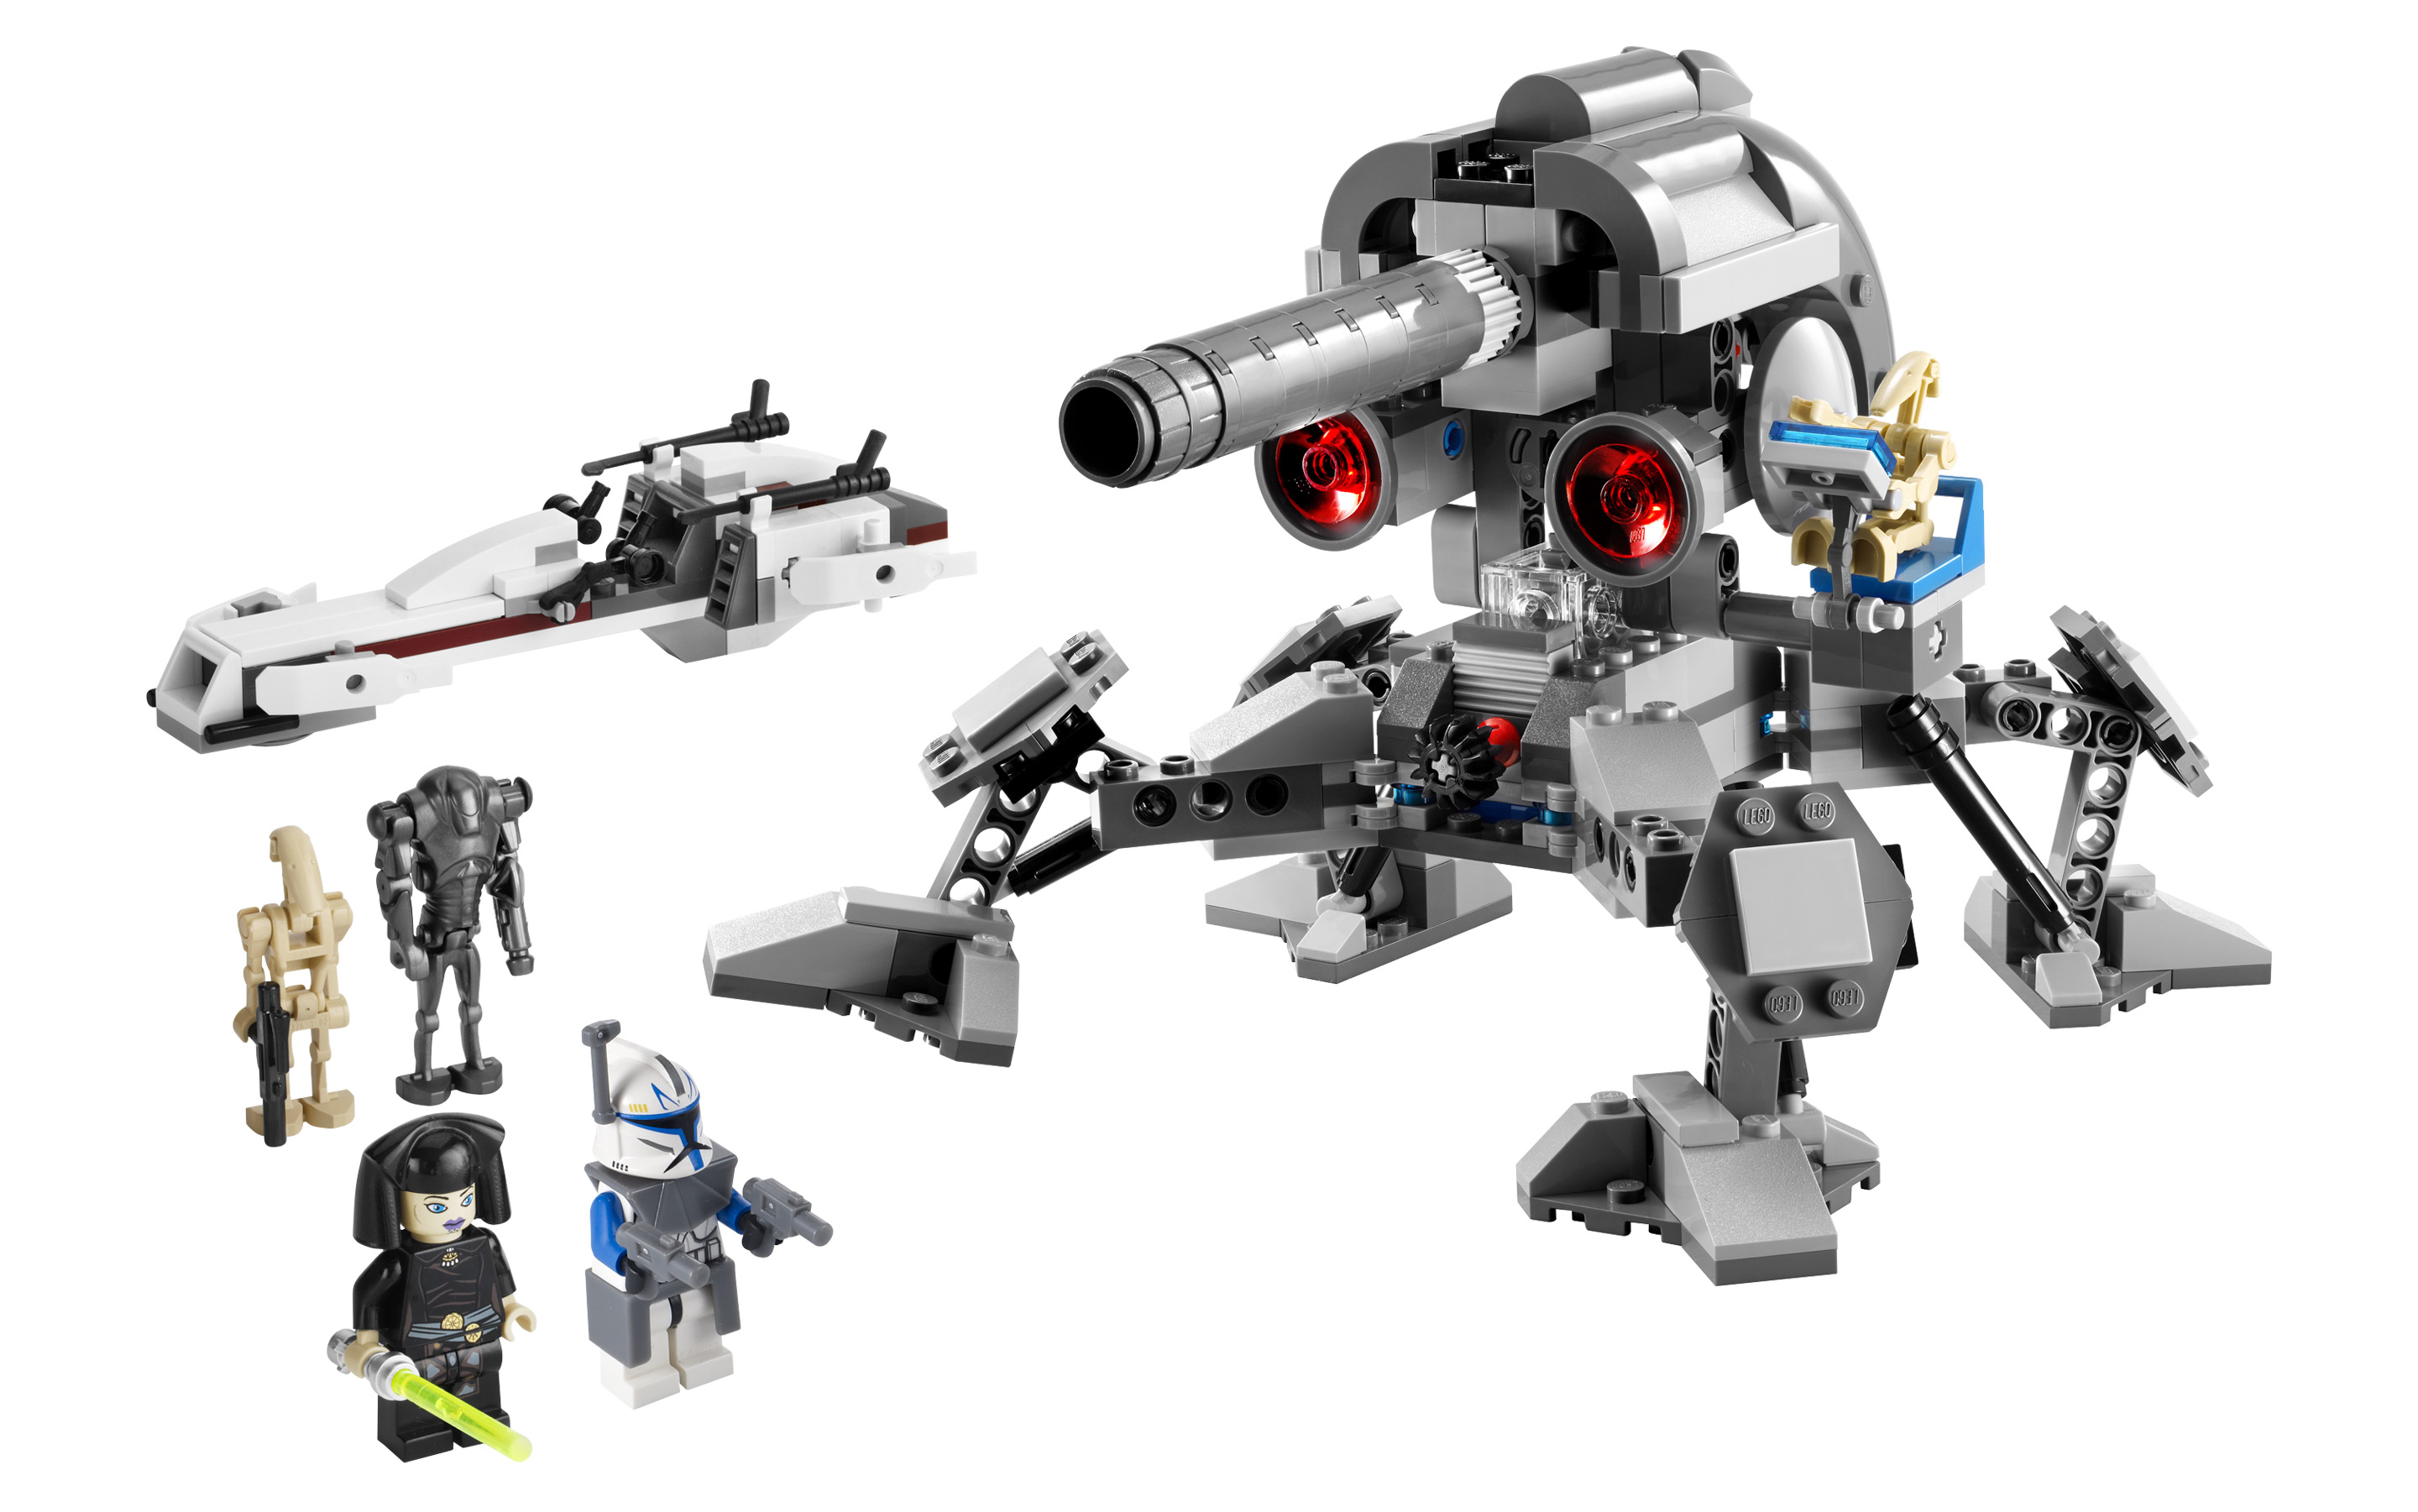 STAR WARS LEGO MINIFIGURE SUPER BATTLE DROD CANNON LOT of 3 FROM SET 8018 7869